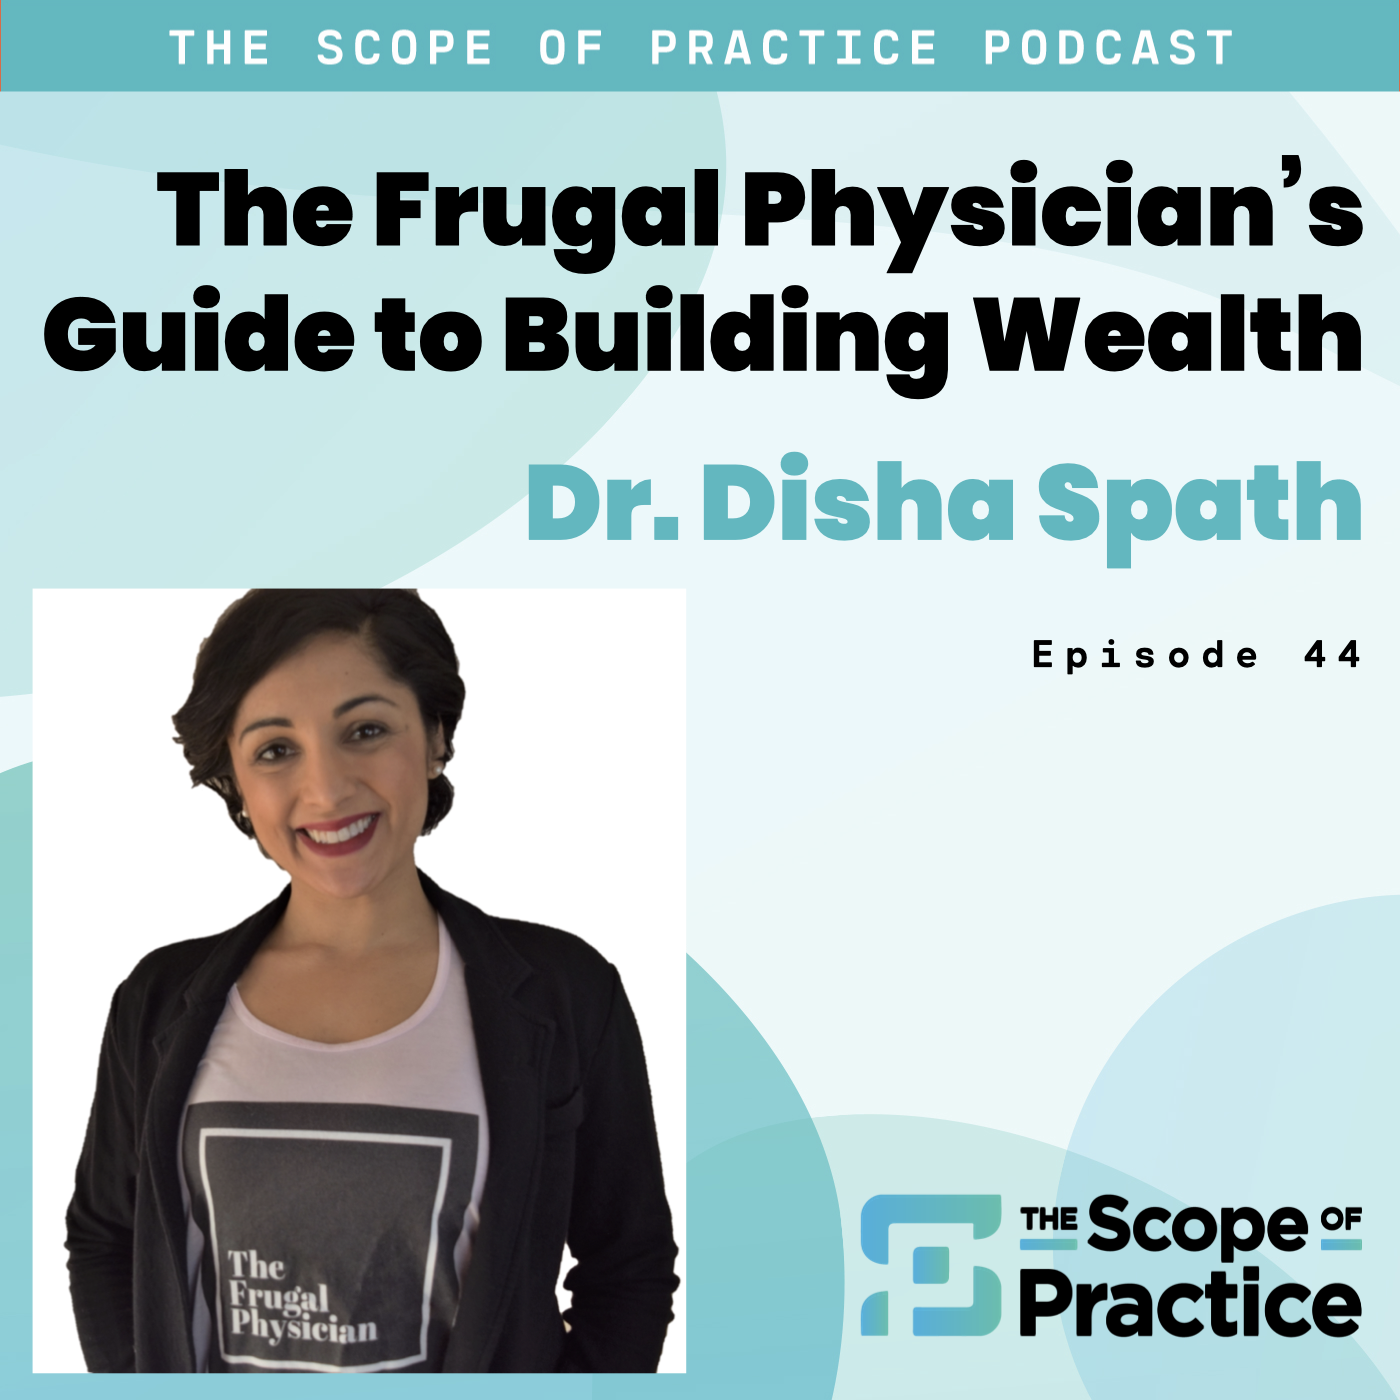 Dr. Disha Spath The Frugal Physician